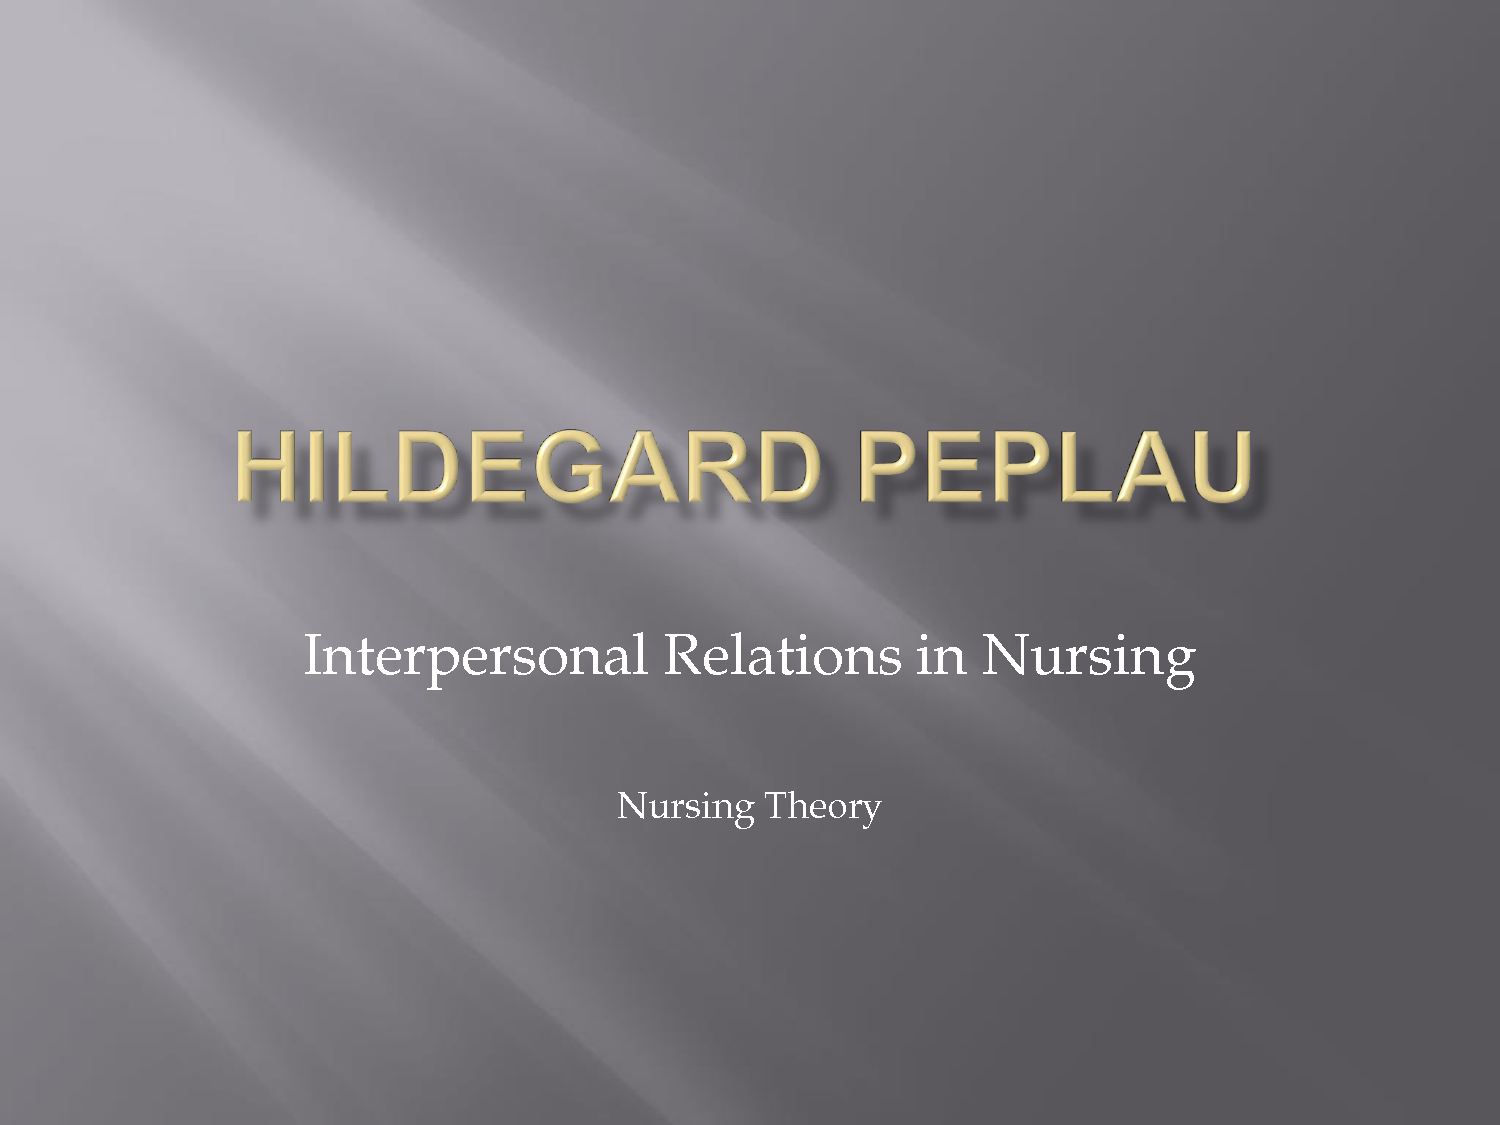 peplau interpersonal relation theory essay This feature is not available right now please try again later.